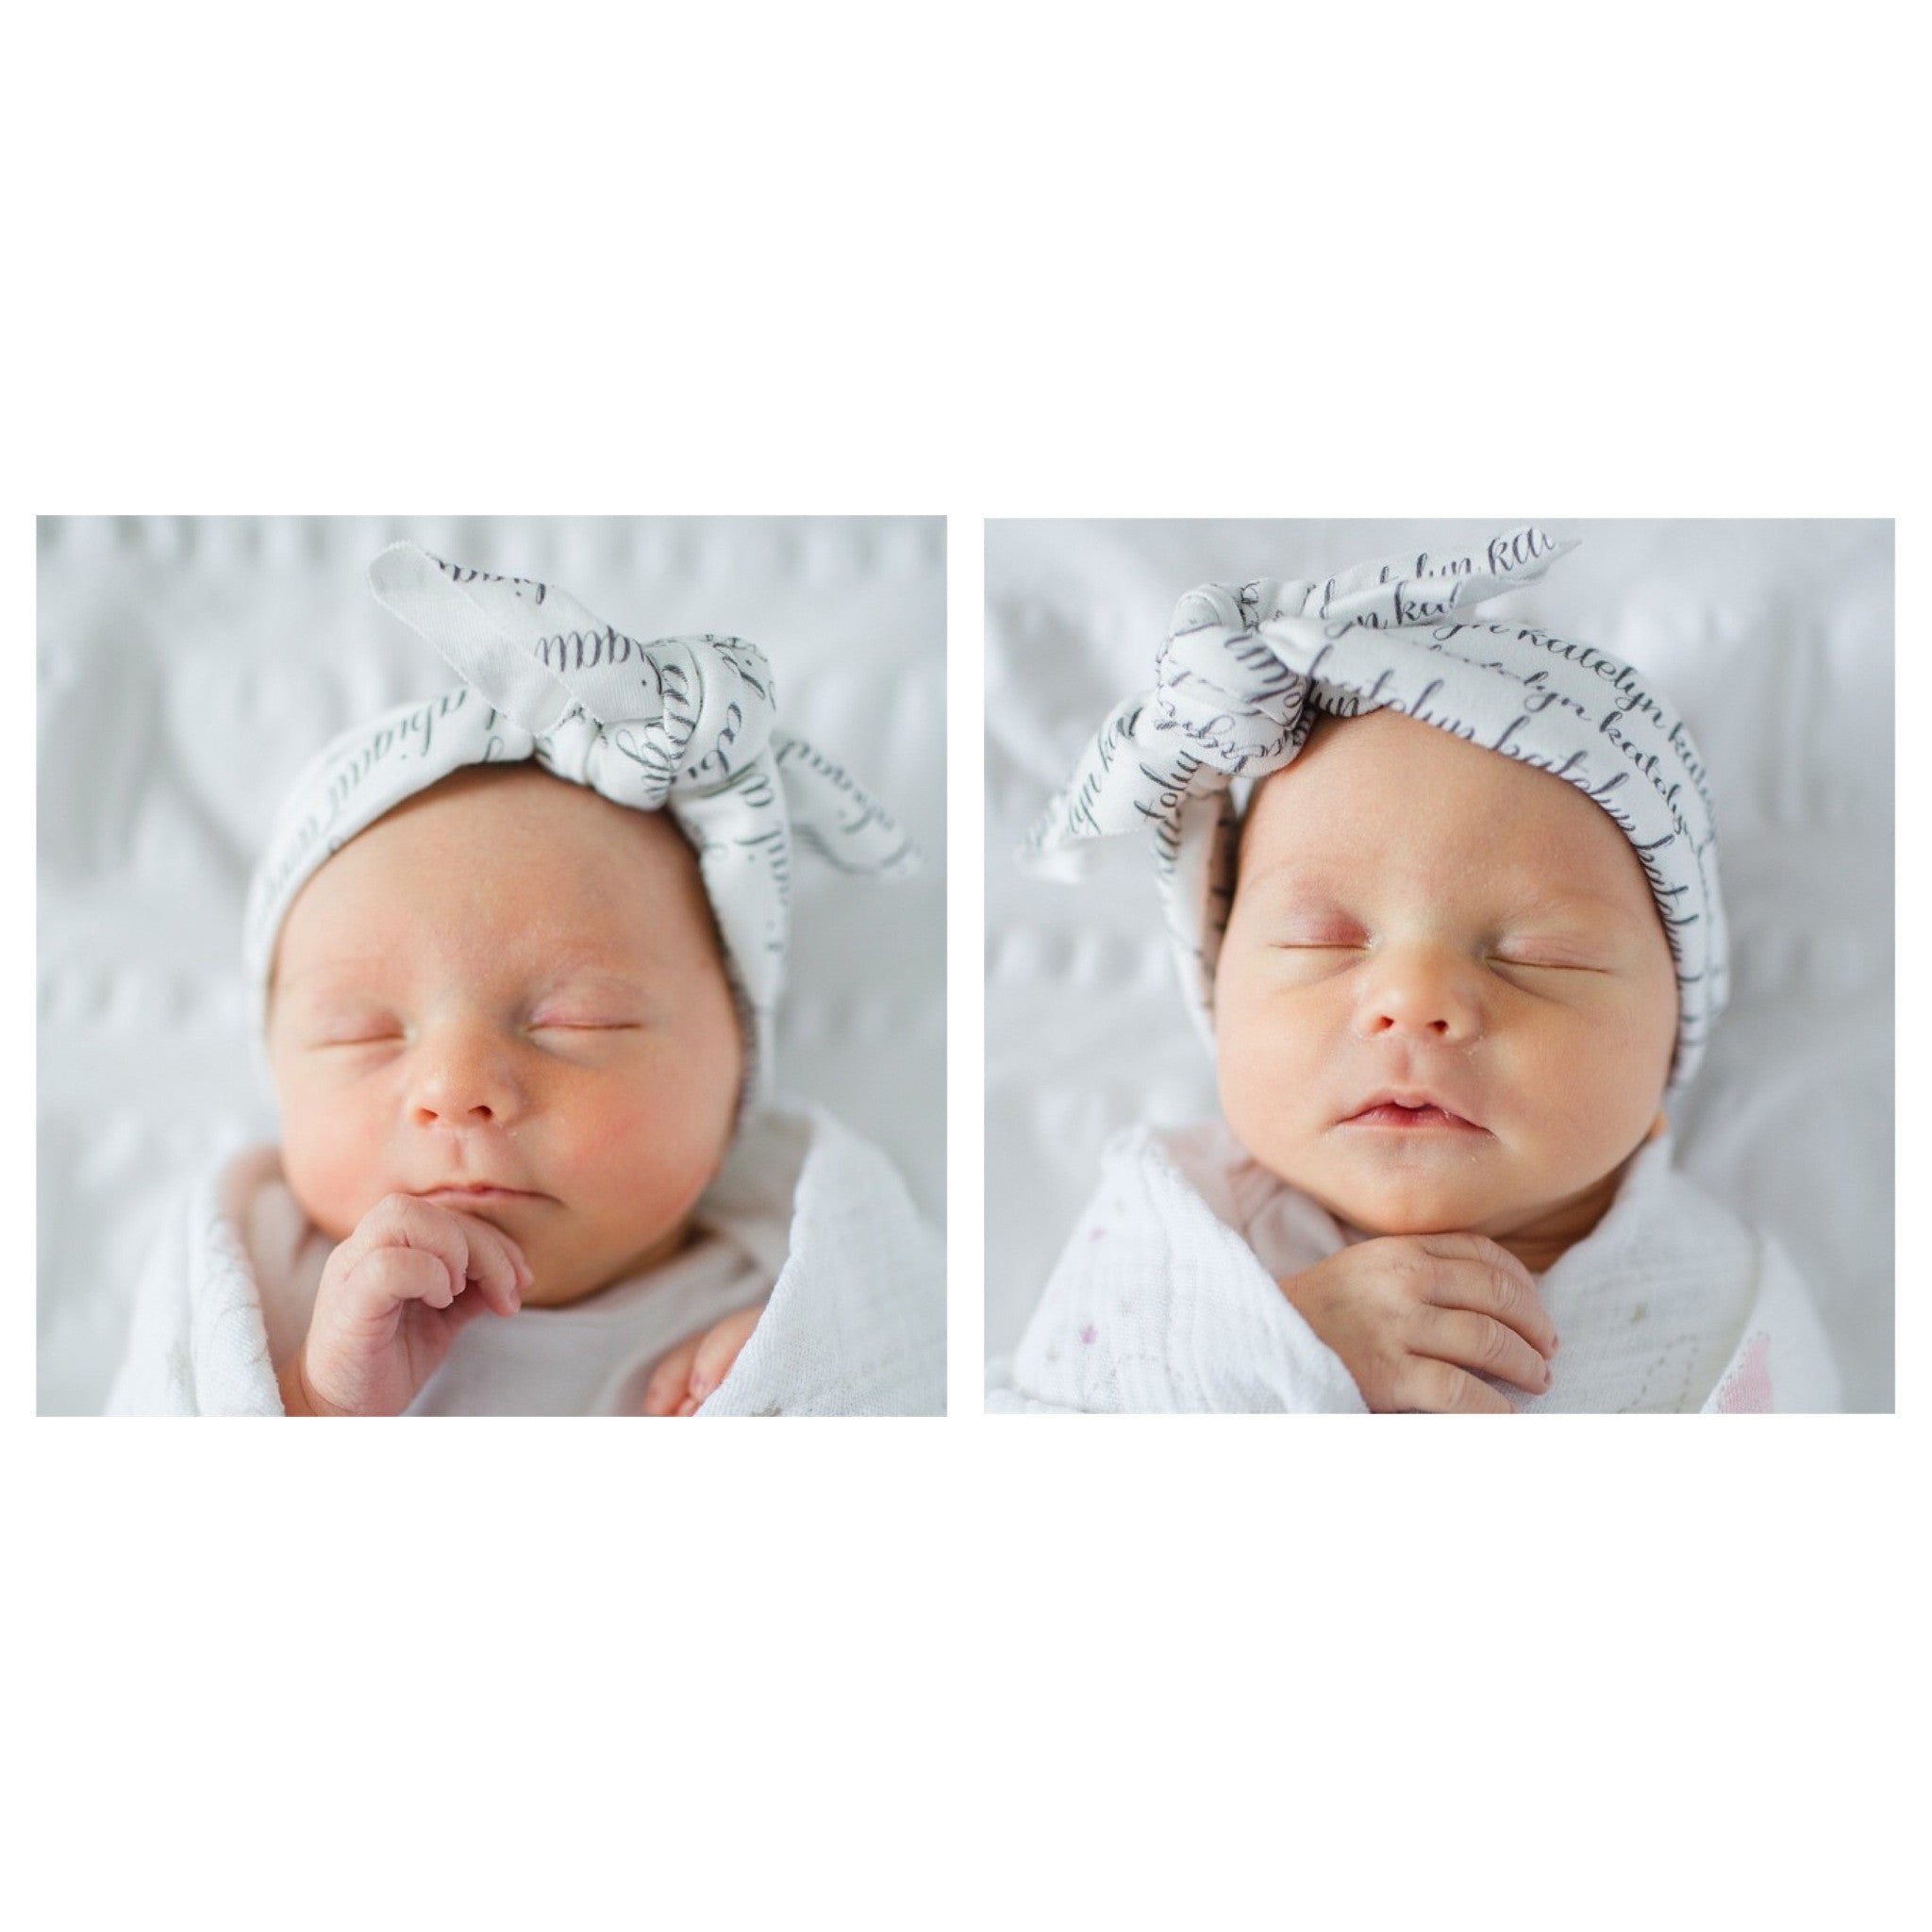 Personalized Headband - Newborn to Toddler Size